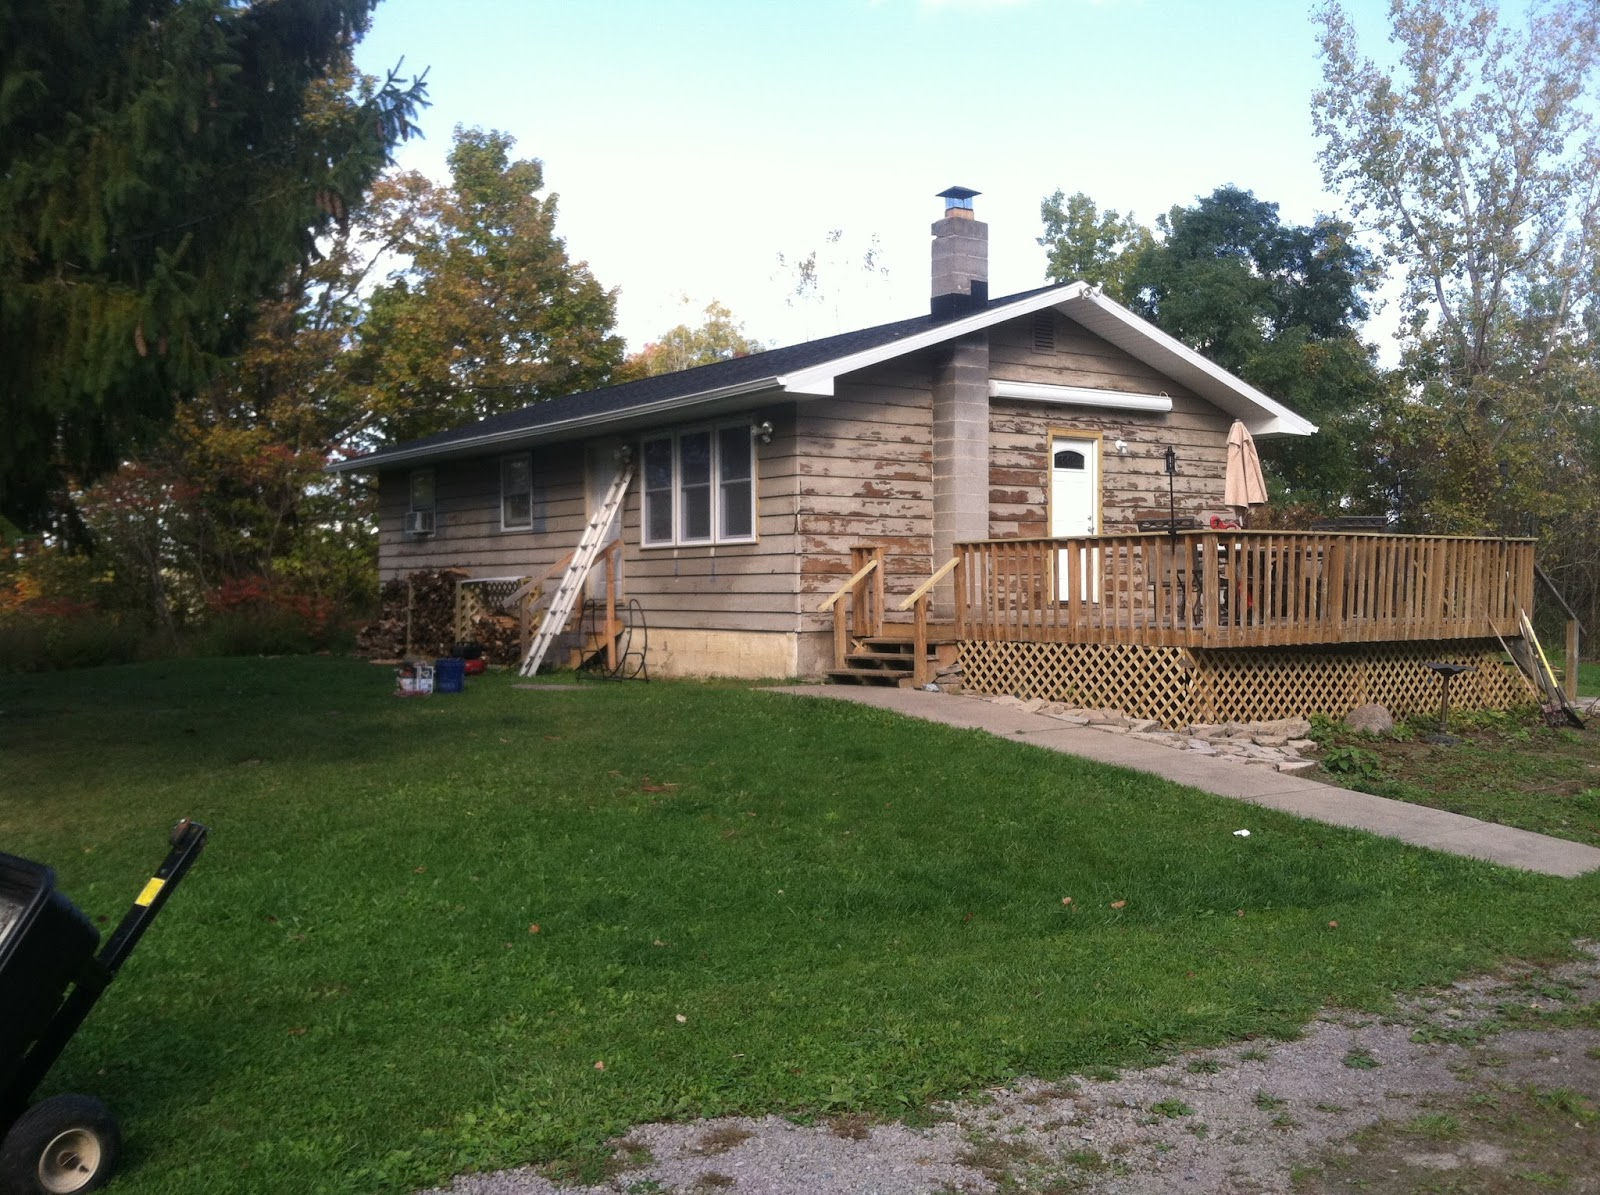 Interior Exterior House Painting Contractor Painter Syracuse Ny Ranch House Painting Exterior